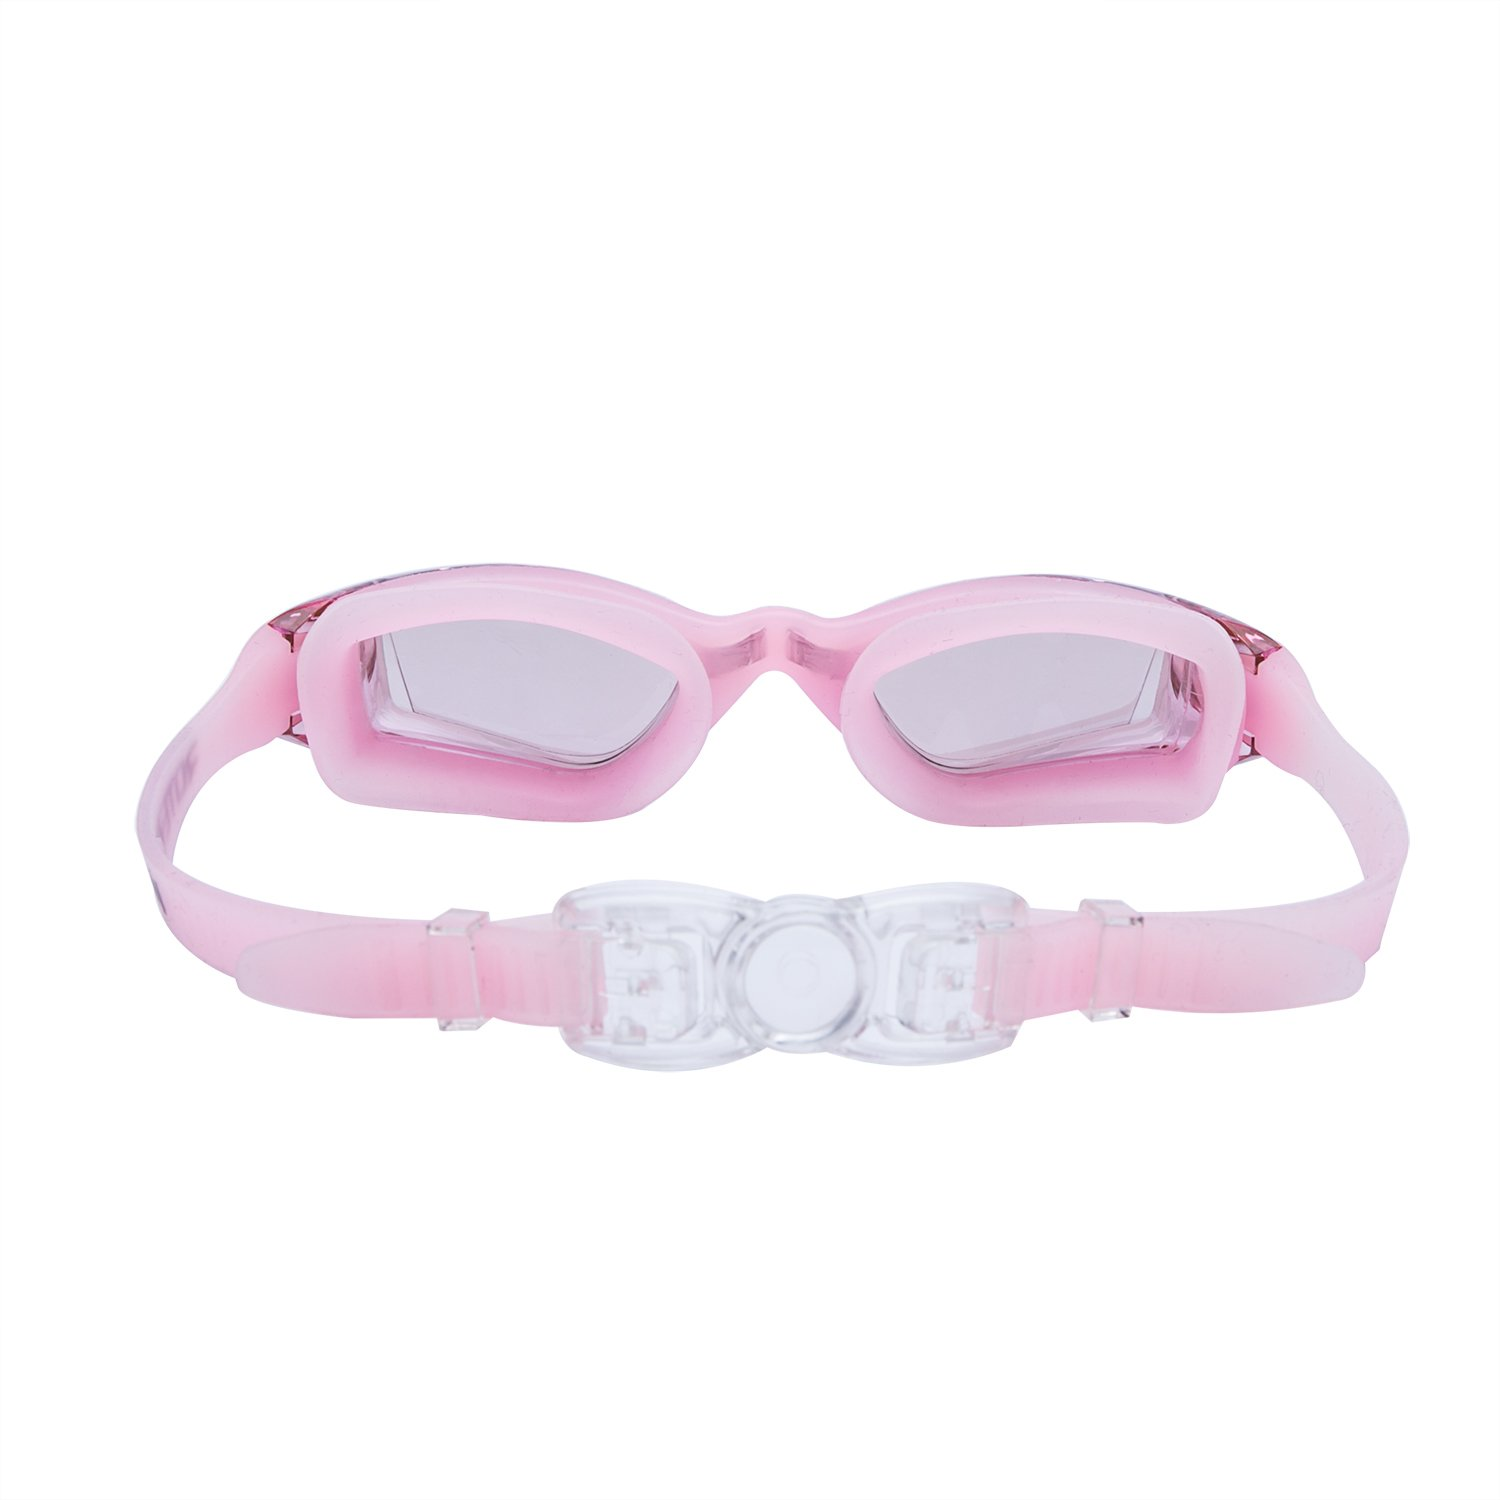 ROTERDON Swimming Goggles Glasses Goggle Anti Fog UV Protection No Leaking and Mirrored Professional for Adults Mens Womens Chidrens Youth Junior Kids in Racing from Swim Store Pink